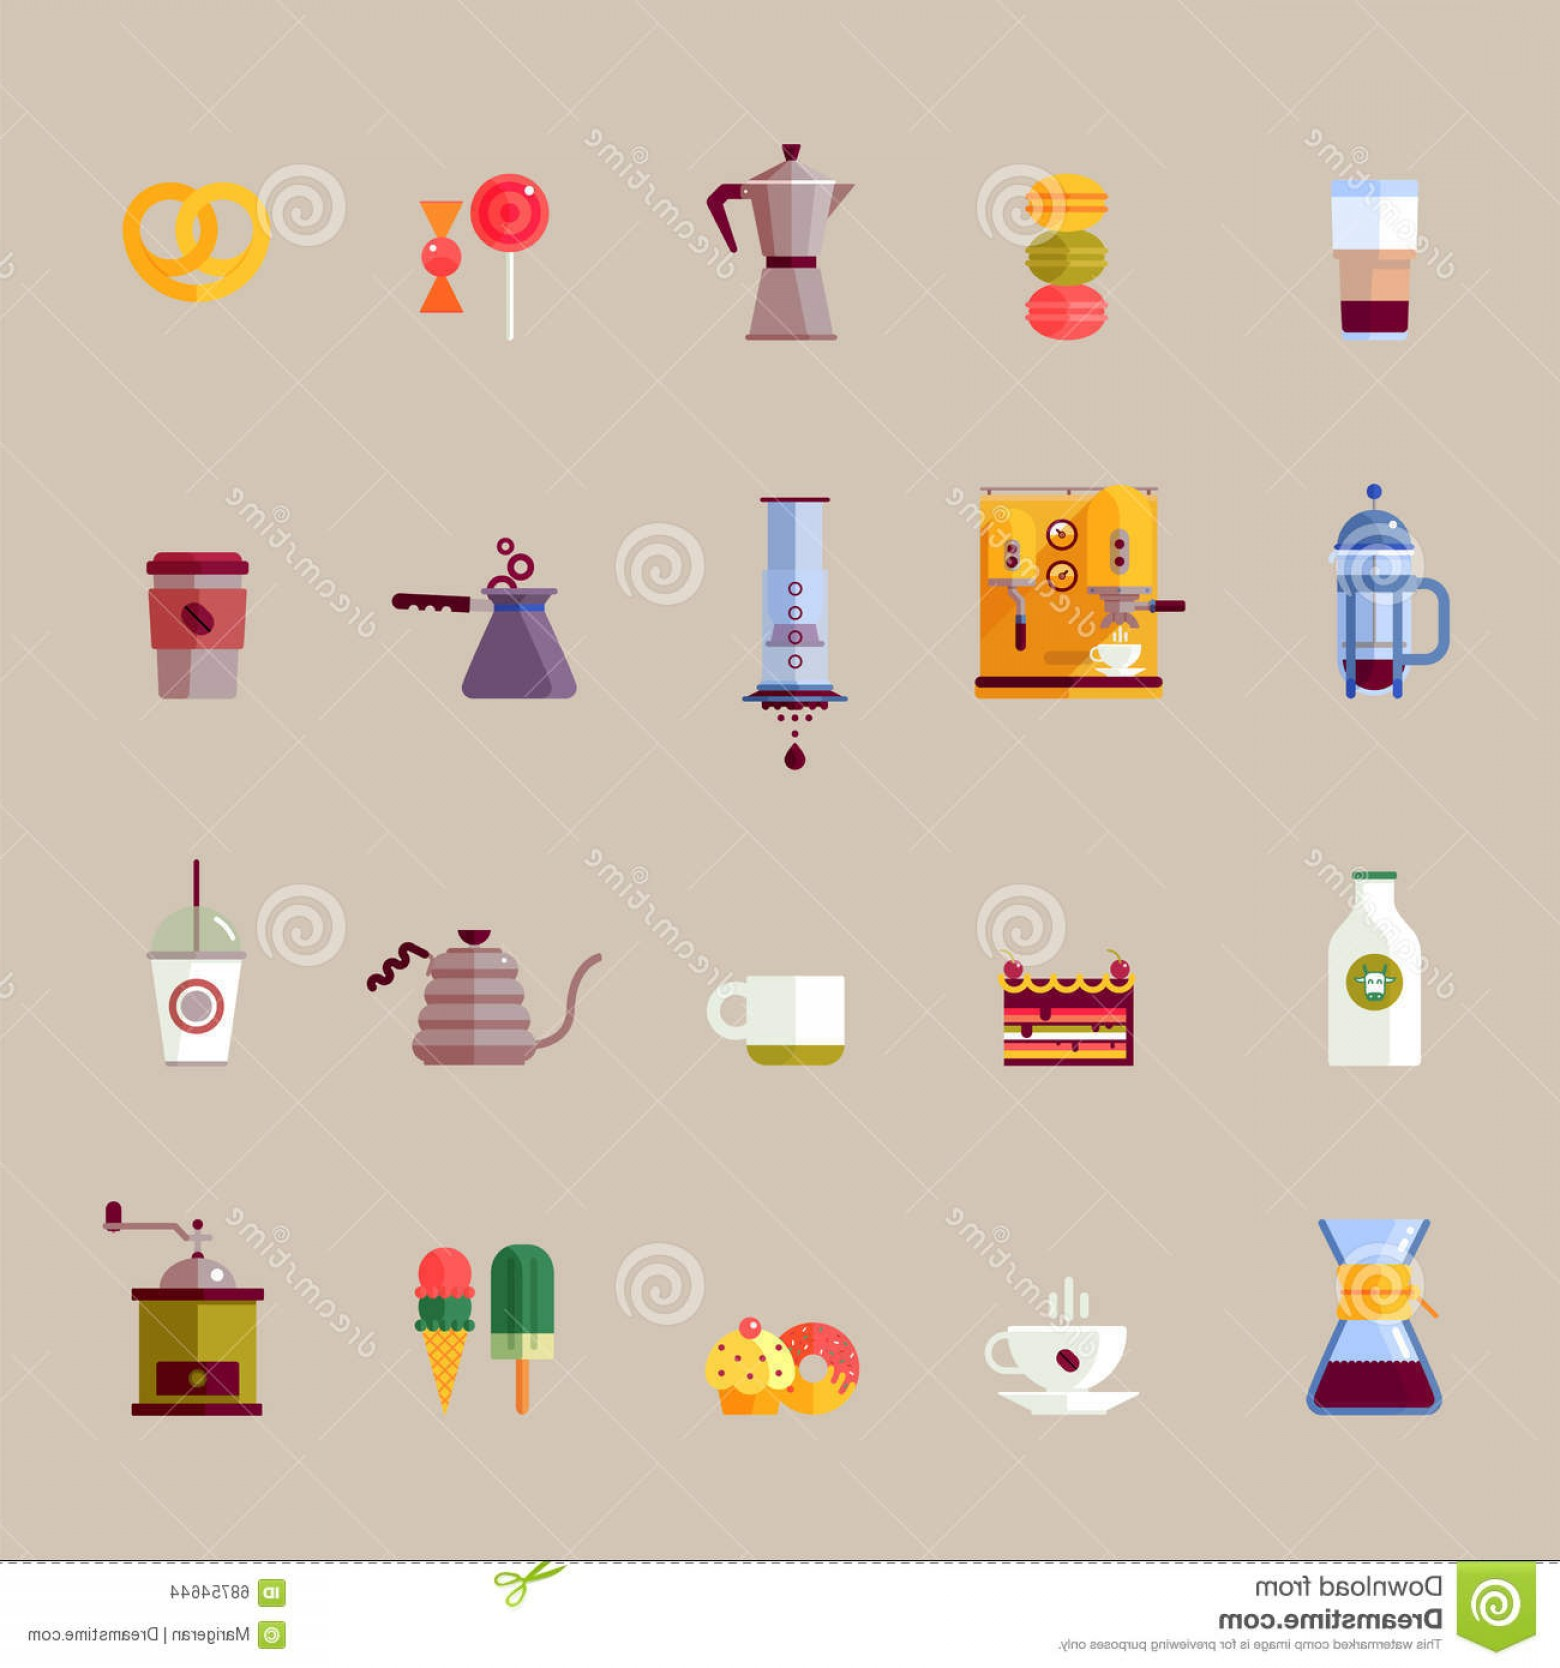 Vector Maker: Stock Illustration Coffee Maker Vector Colorful Flat Icons Set Modern Icons Shop French Press Aeropress Chemex Illustration Image